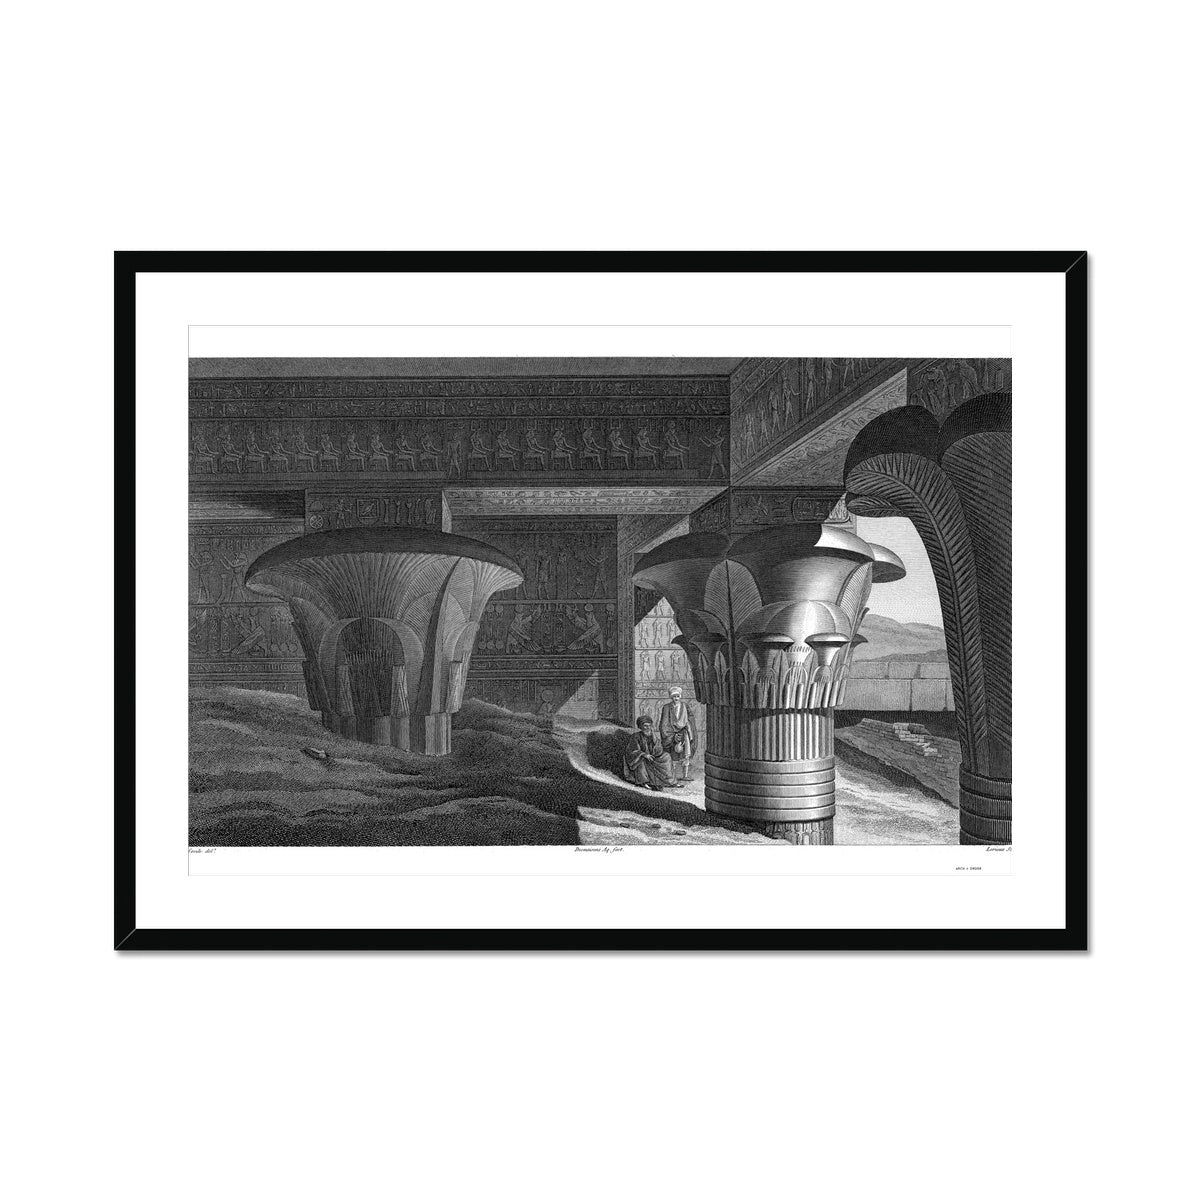 Temple of Horus Portico Interior - Edfu Egypt -  Framed & Mounted Print